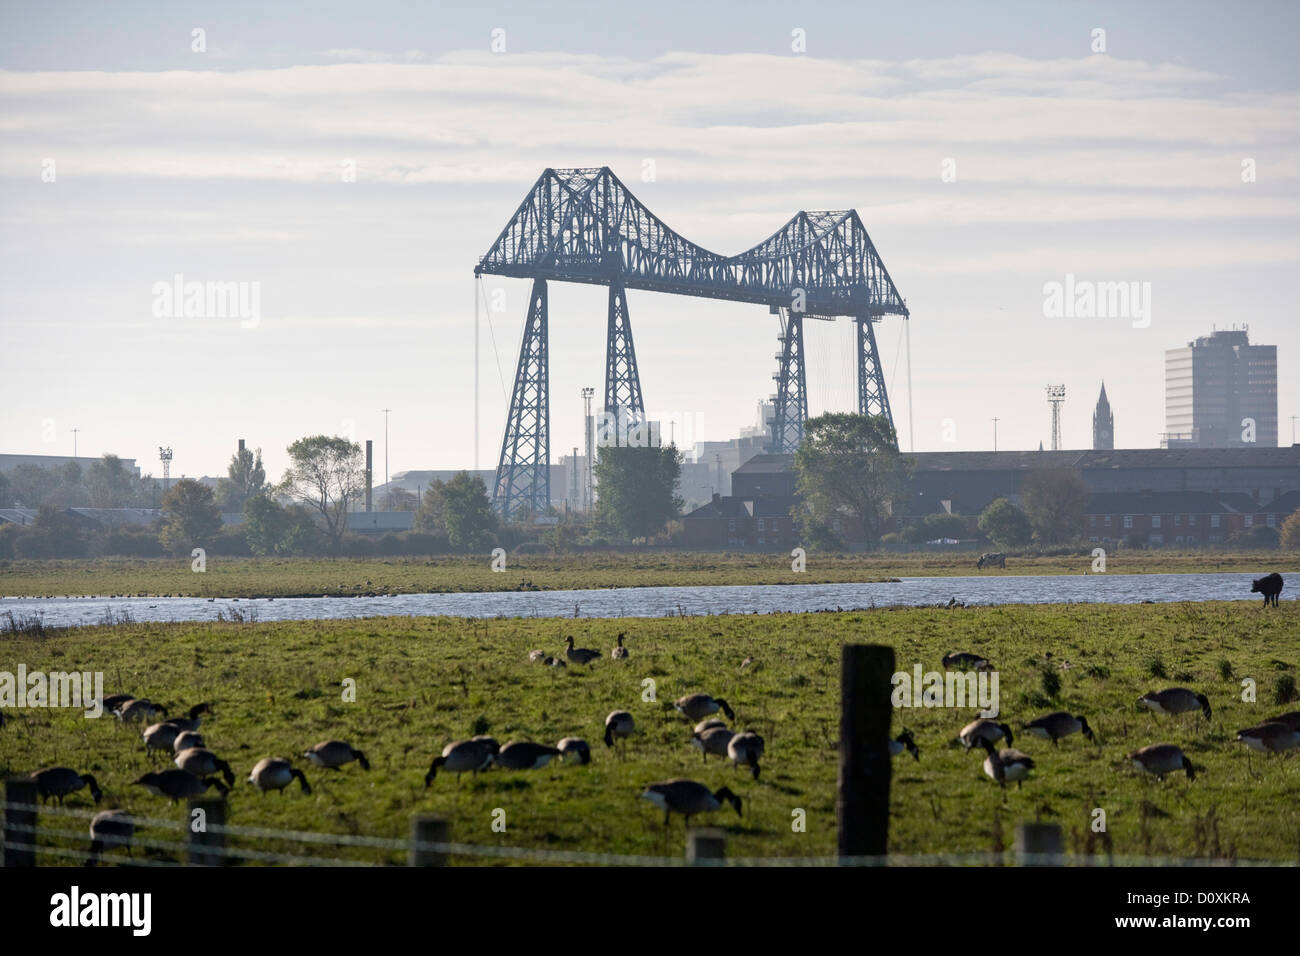 View of the Tees Transporter Bridge, Middlesbrough England - Stock Image